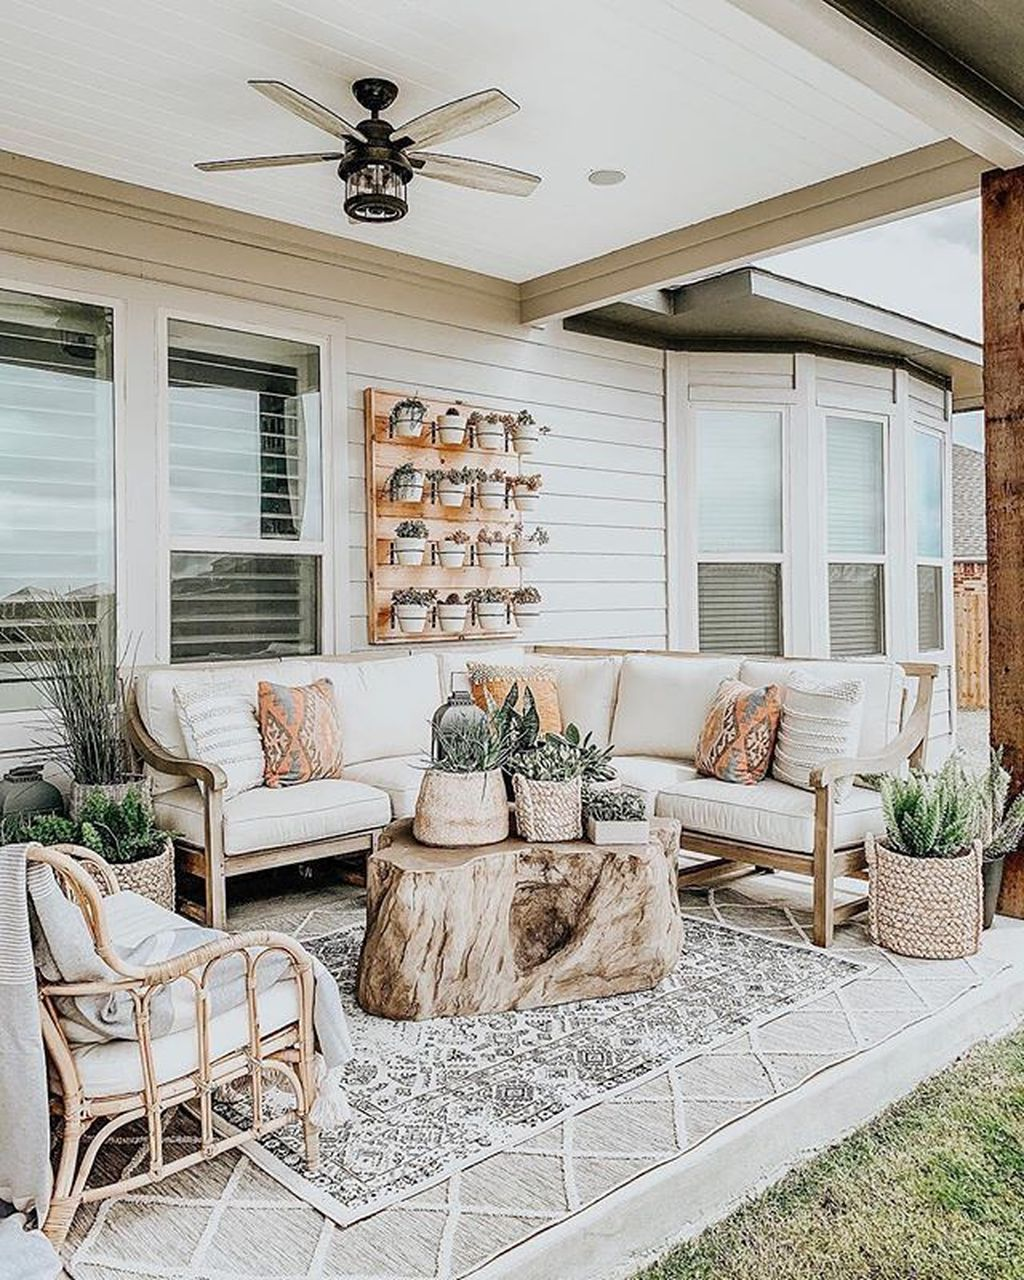 Admirable Cozy Patio Design Ideas To Relaxing On A Sunny Day 31